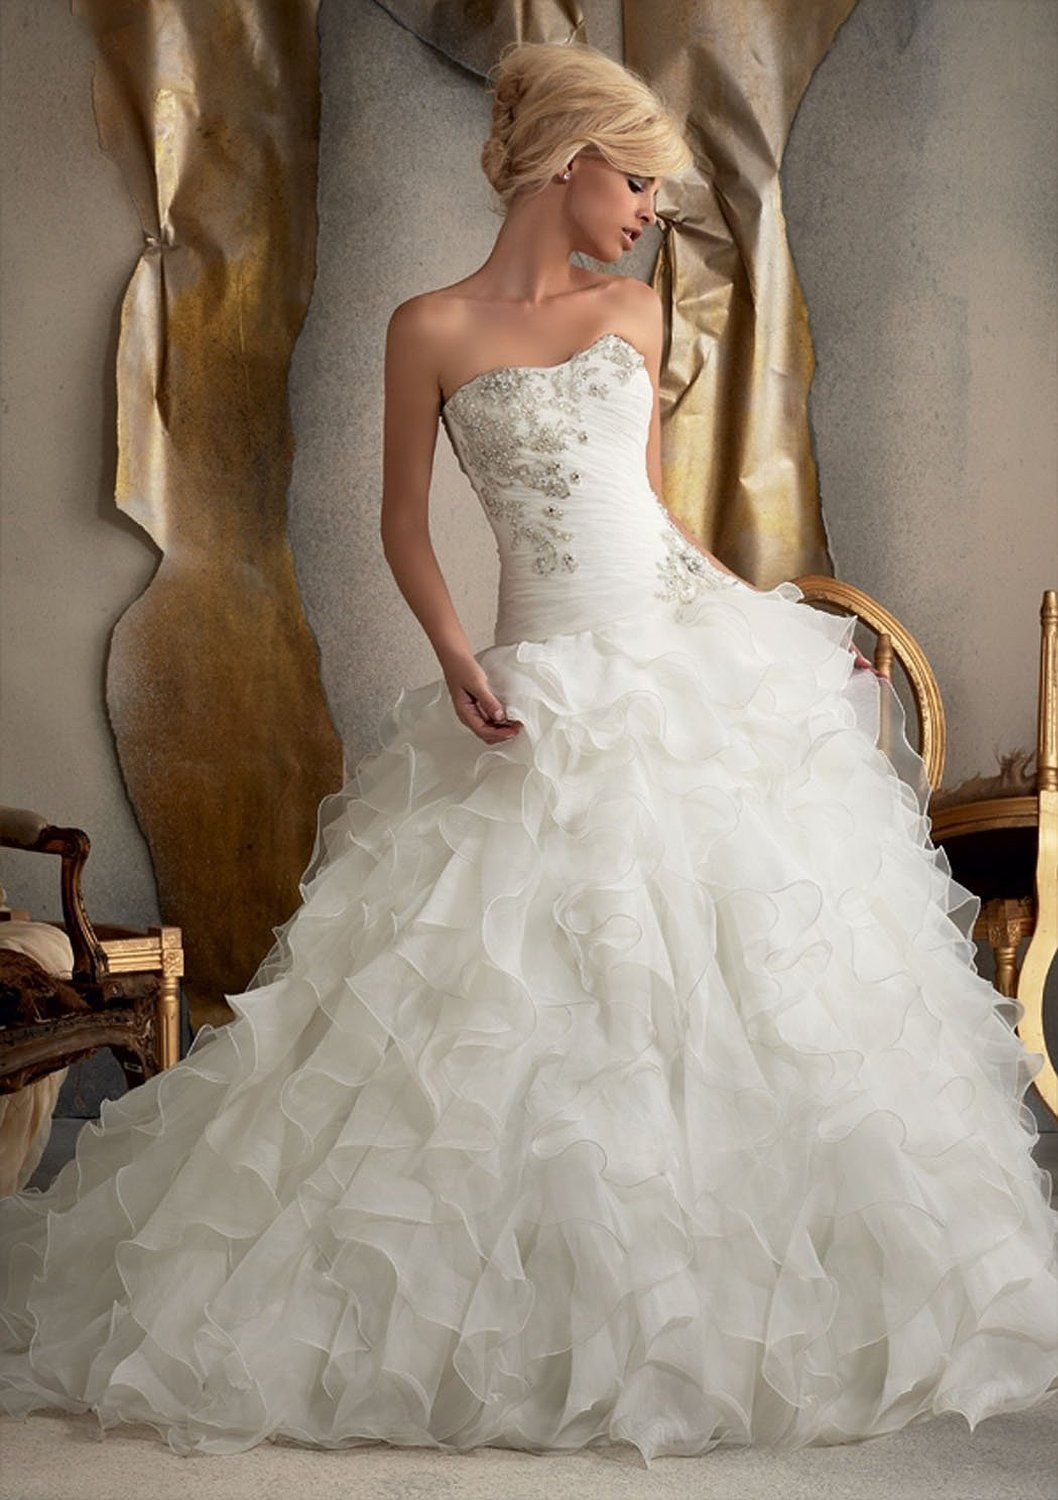 PHSOAR Womens Organza Sweetheart Neckline Cascading Ruched Wedding Dress At Amazon Clothing Store